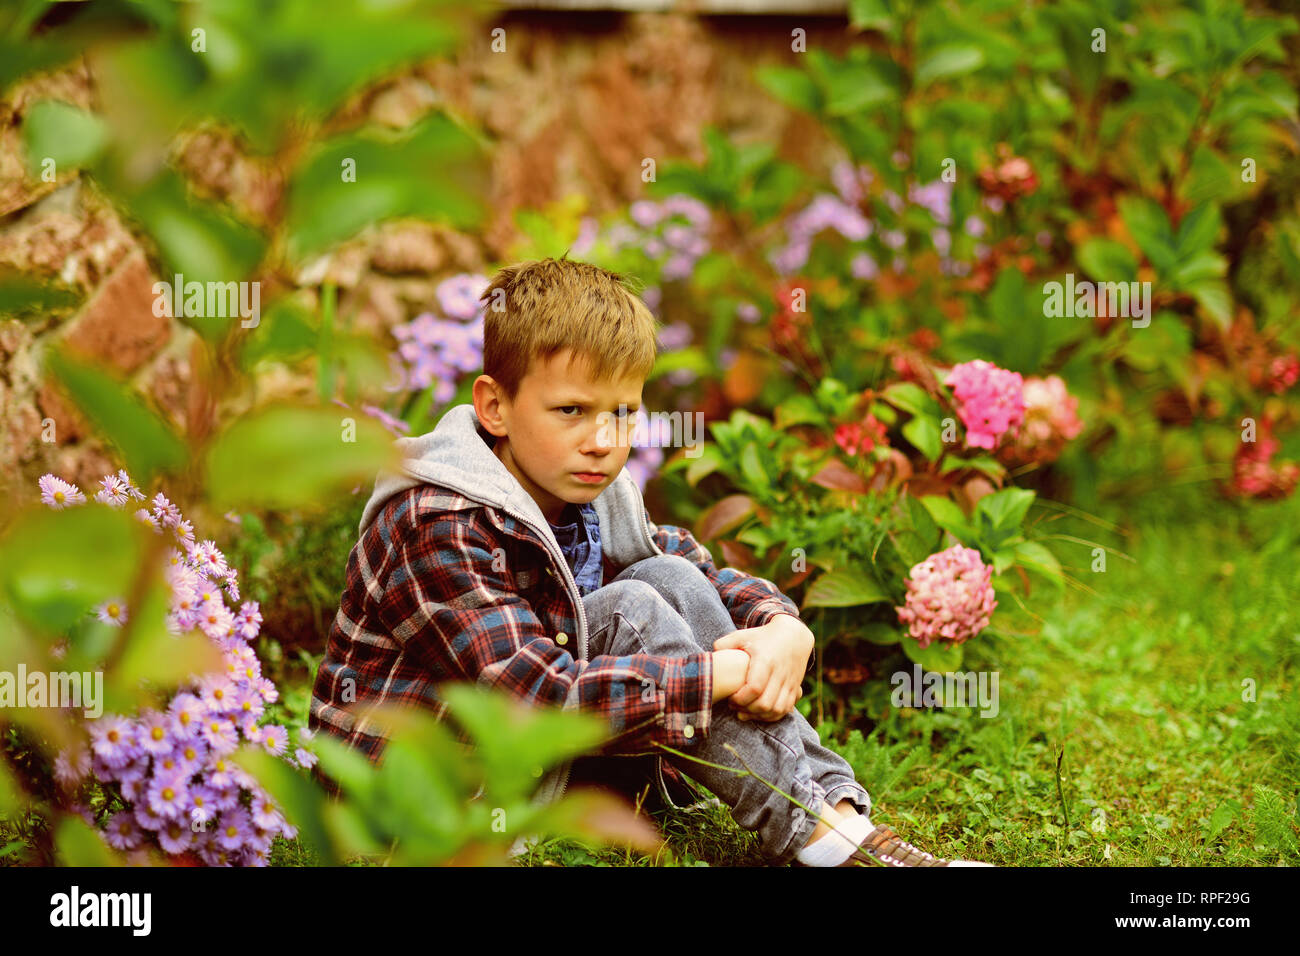 Small boy sit down under insult. Small boy feel deeply insulted. Child abuse and neglect. Insult by word or act. Engage in debate and not in insult - Stock Image